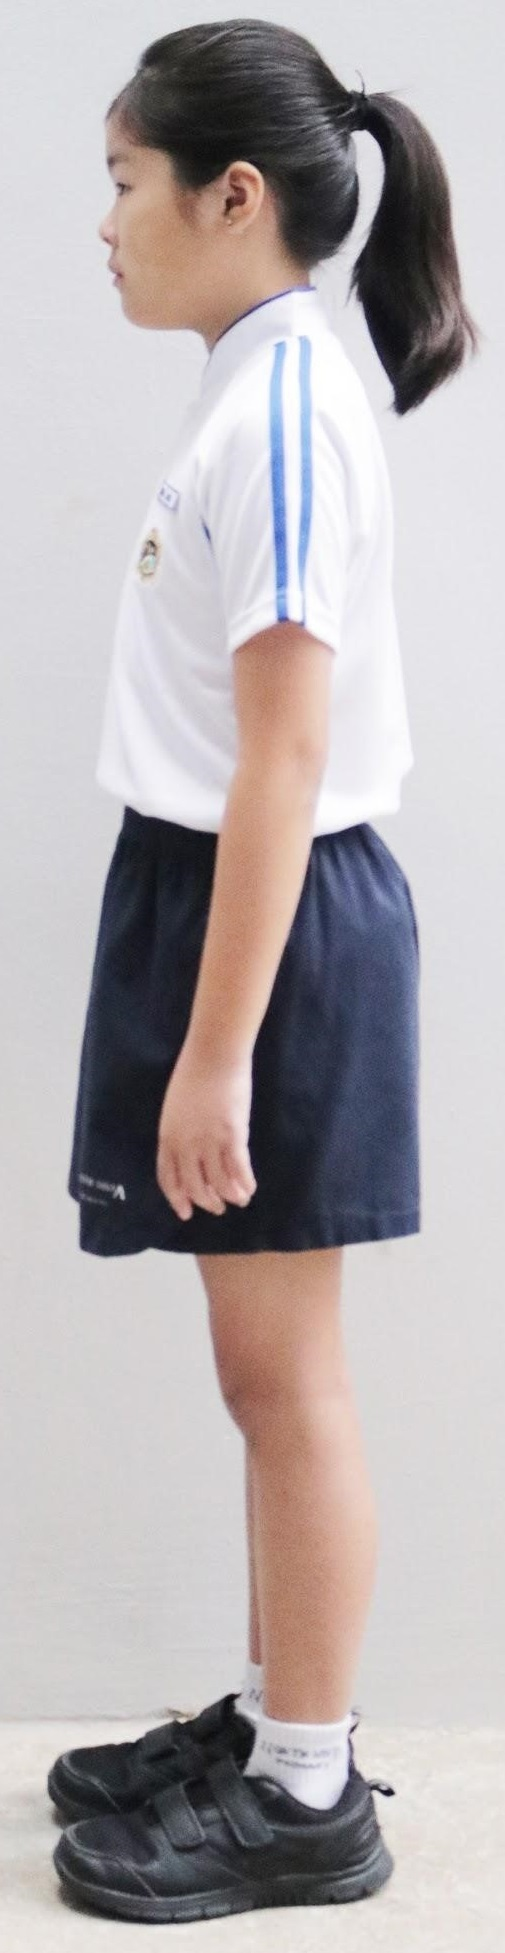 Girls Attire PE (side).jpg